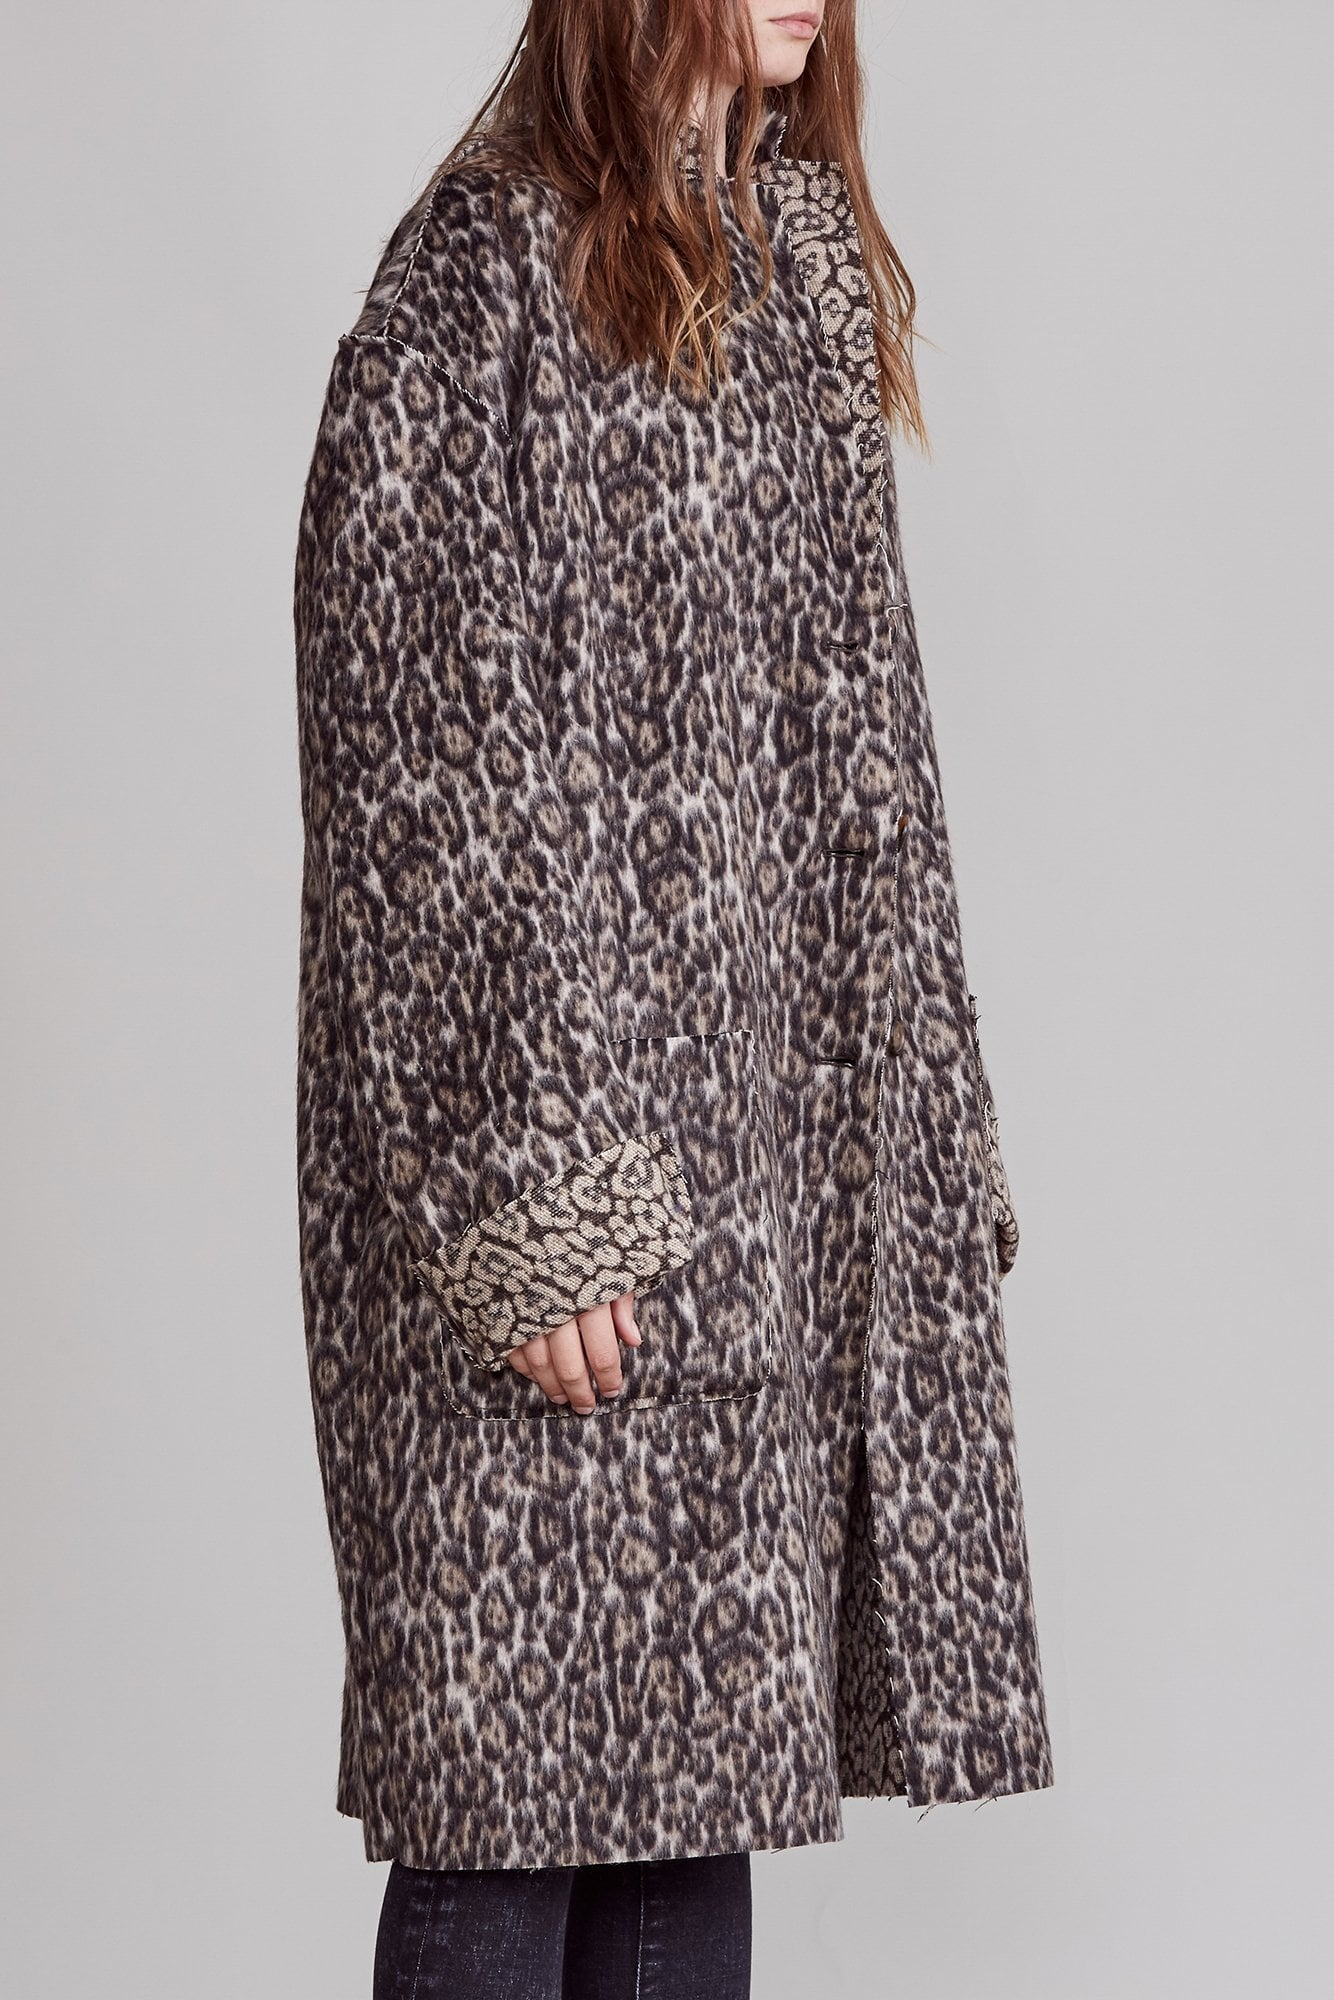 Raw Cut Coat - Leopard